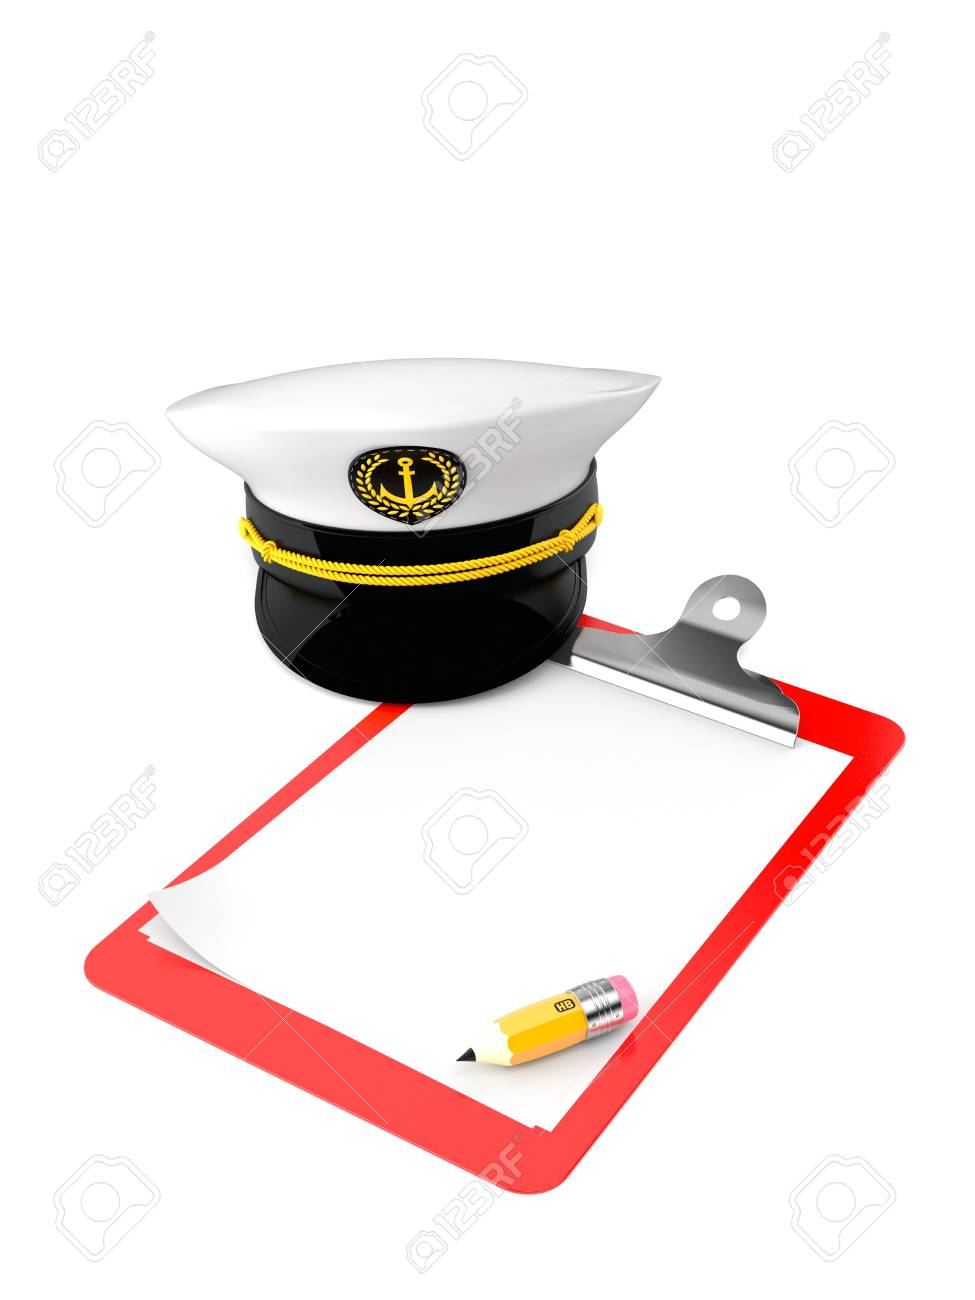 f10baebf8bb Captain s hat with clipboard isolated on white background Stock Photo -  94601394